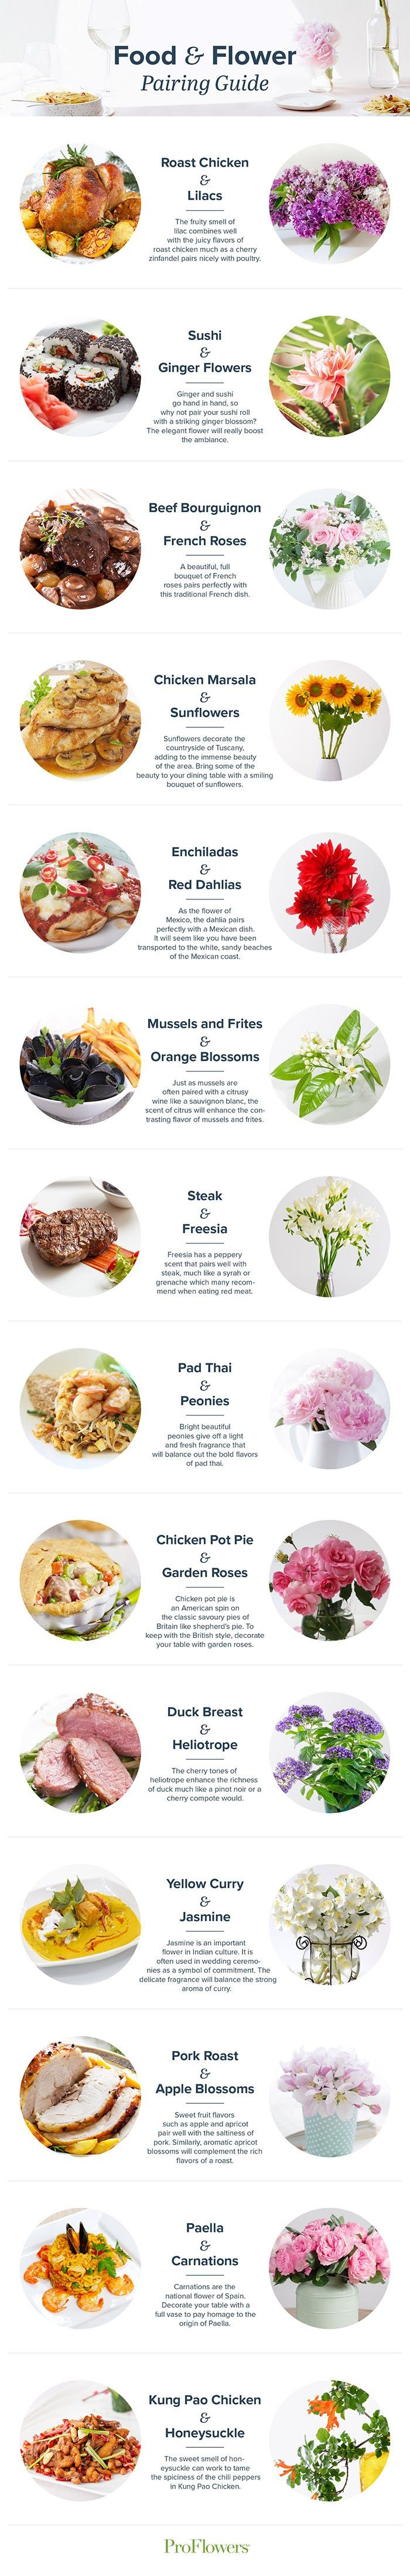 Food And Flower Pairing Great For A Dinner Party